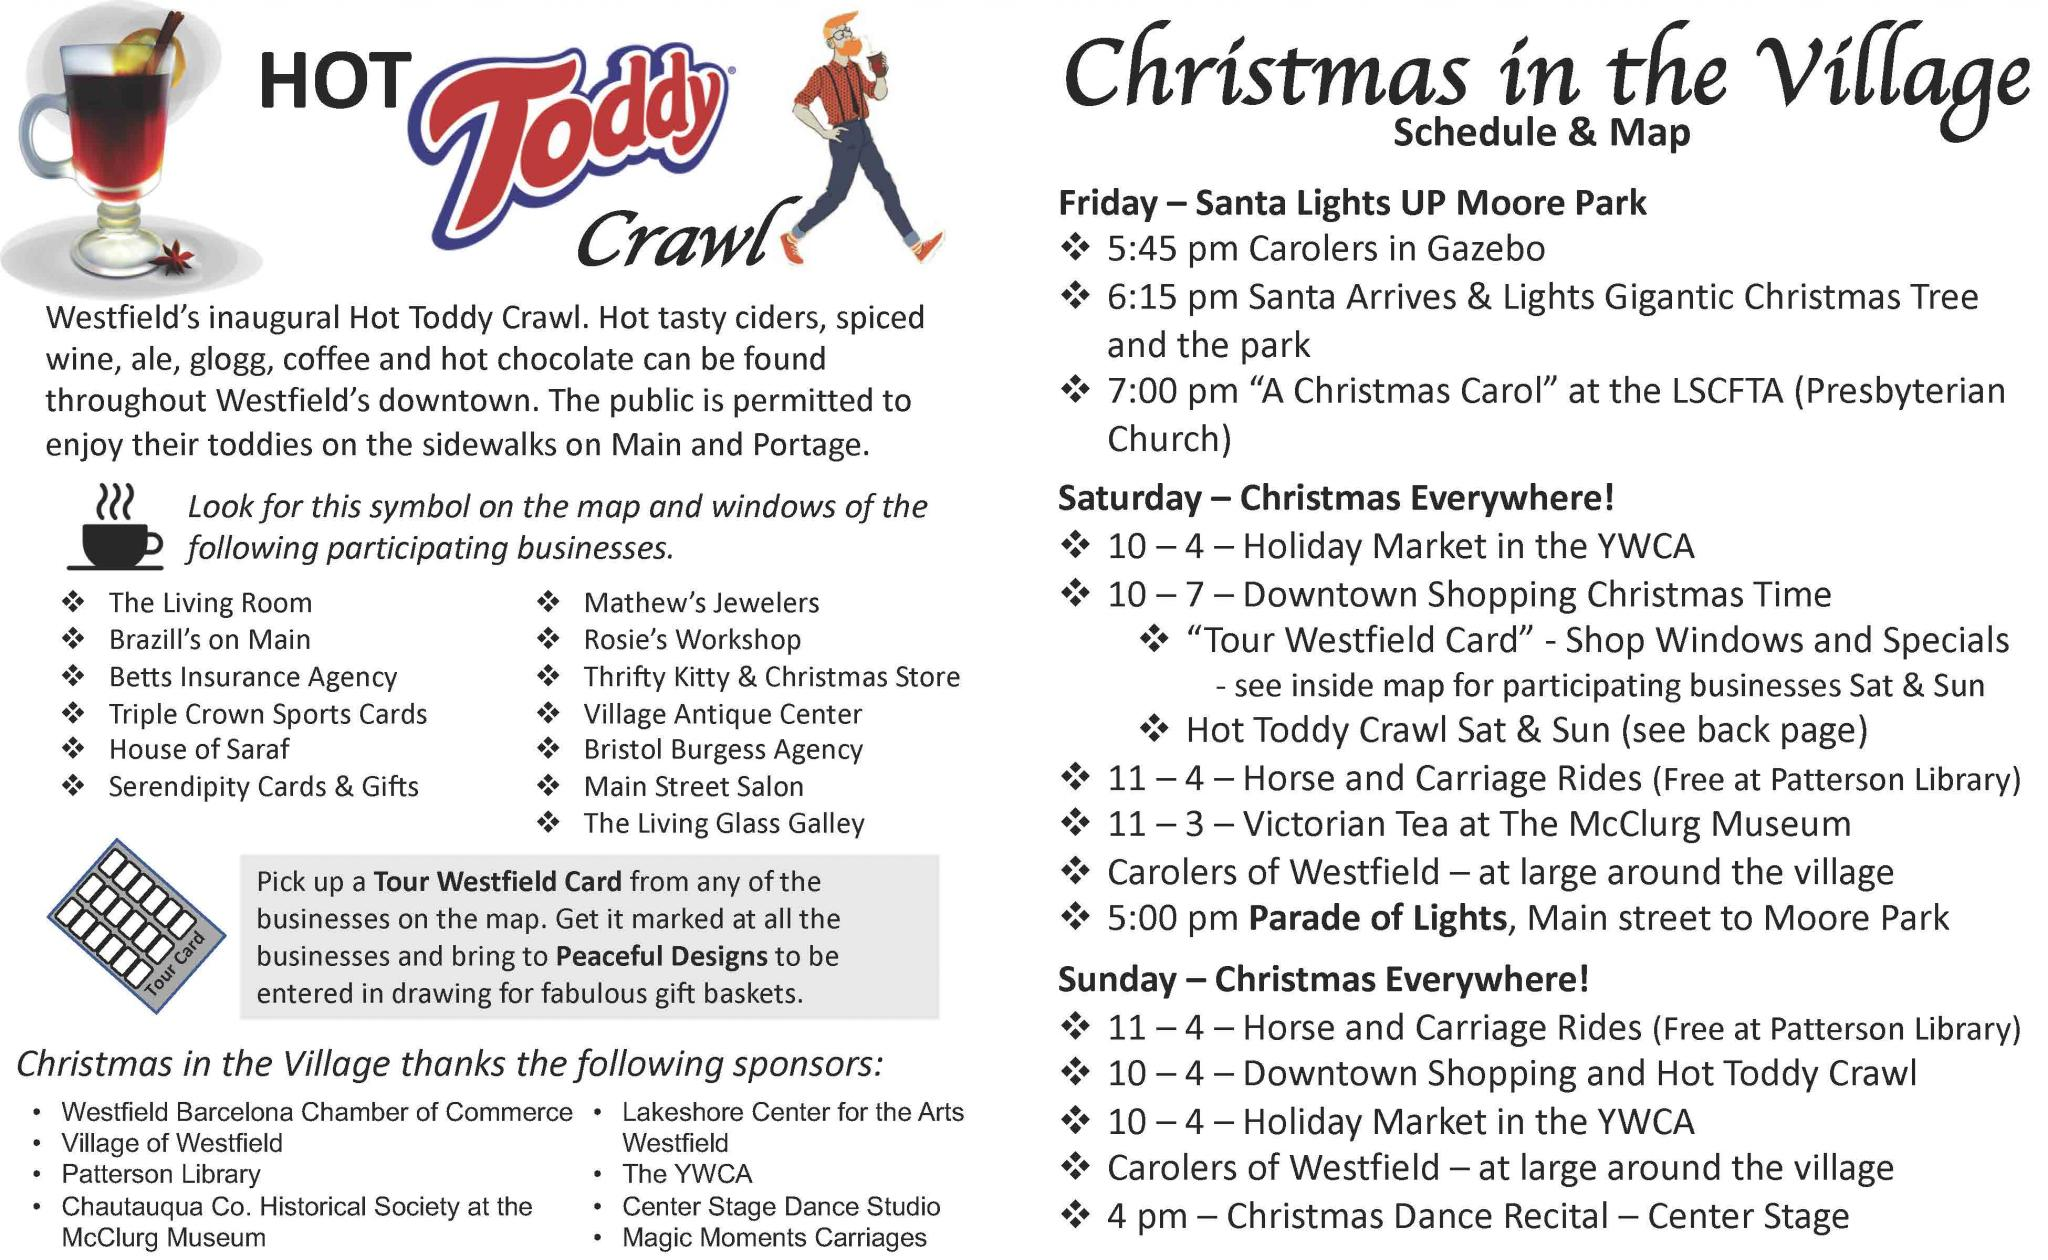 Christmas In the Village Schedule & Map page 1